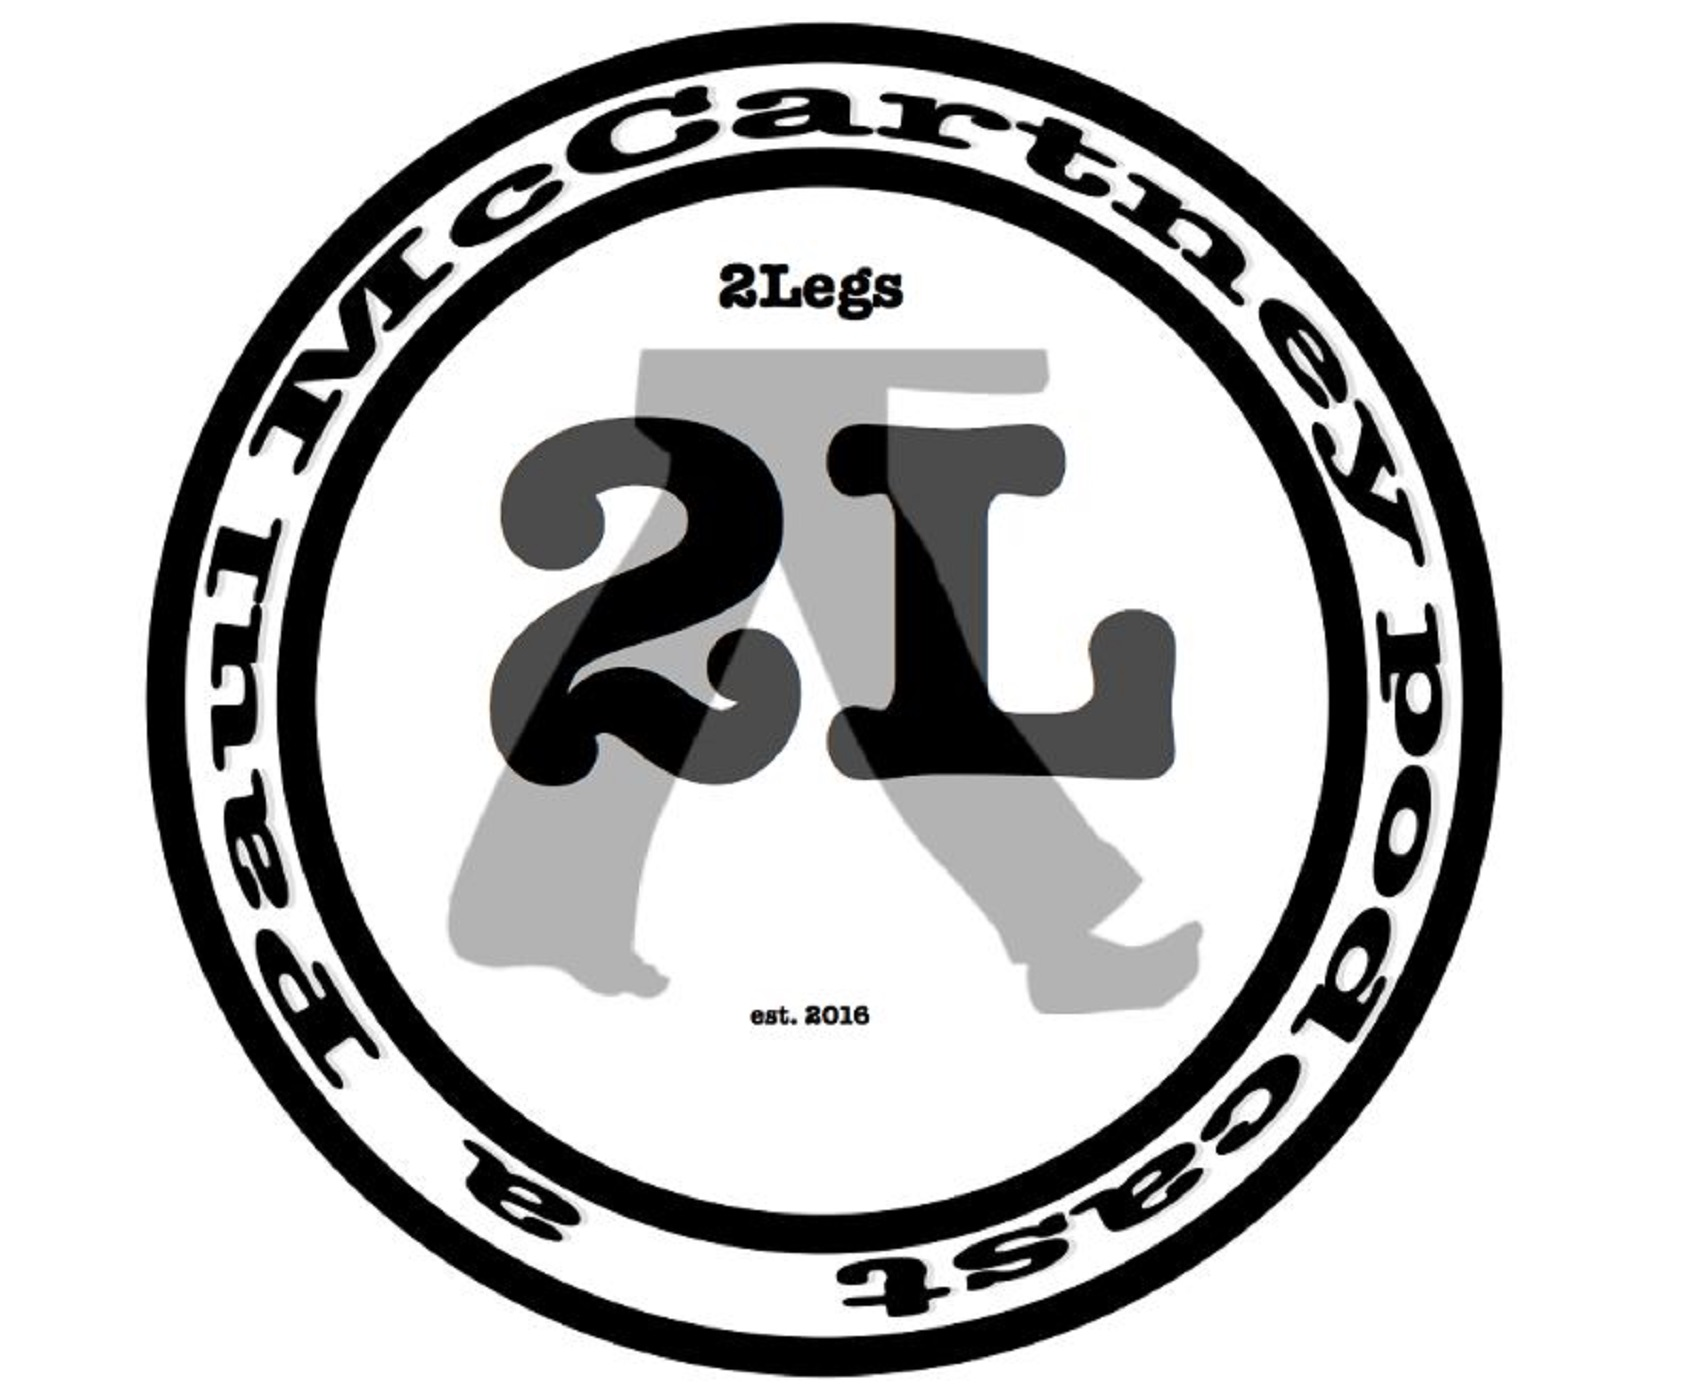 2Legs: A Paul McCartney Podcast